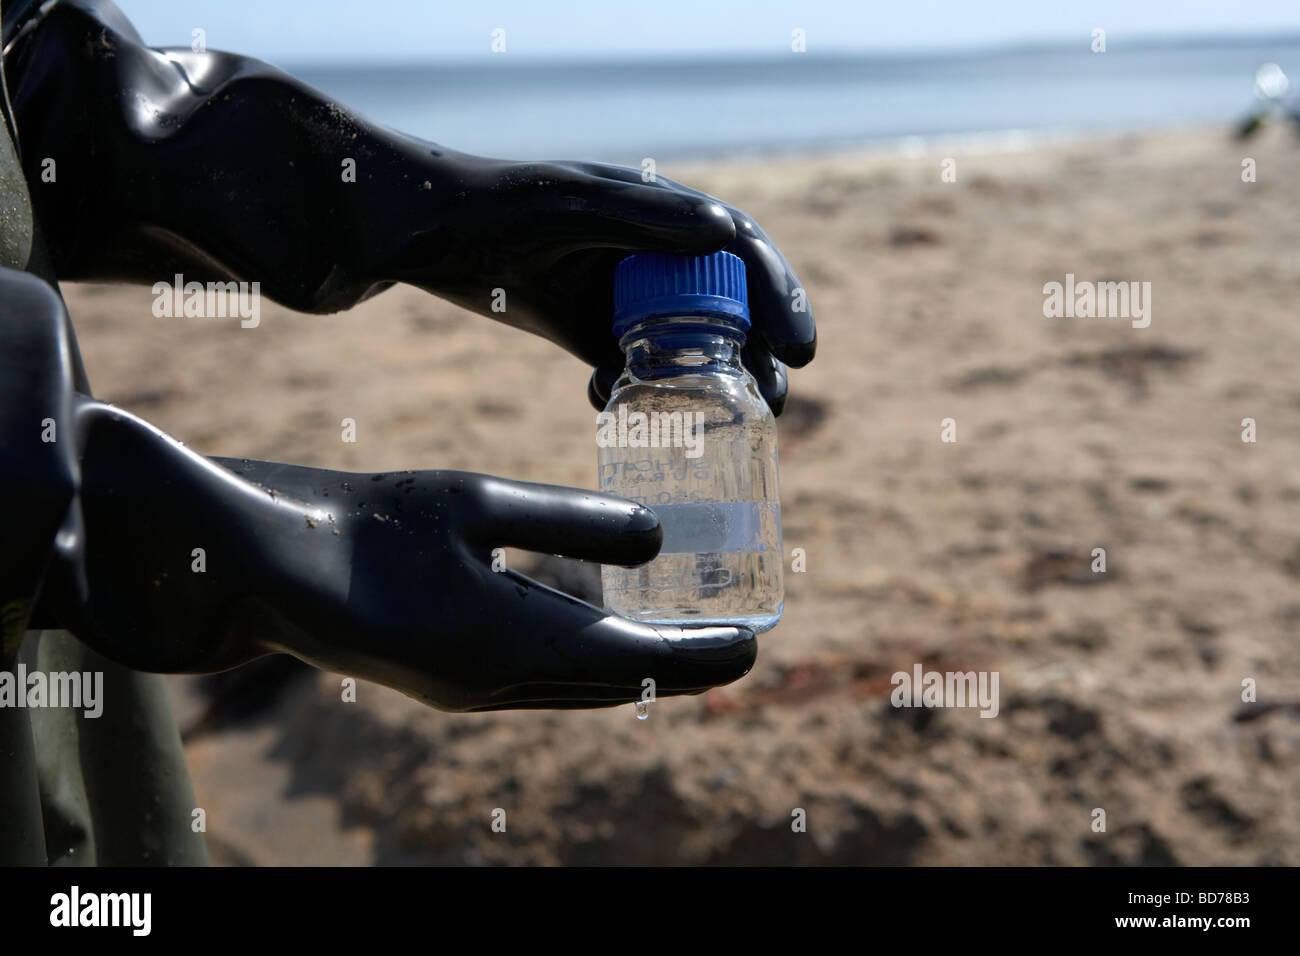 northern ireland environment service operative sampling water from local beach to assess water quality standards - Stock Image